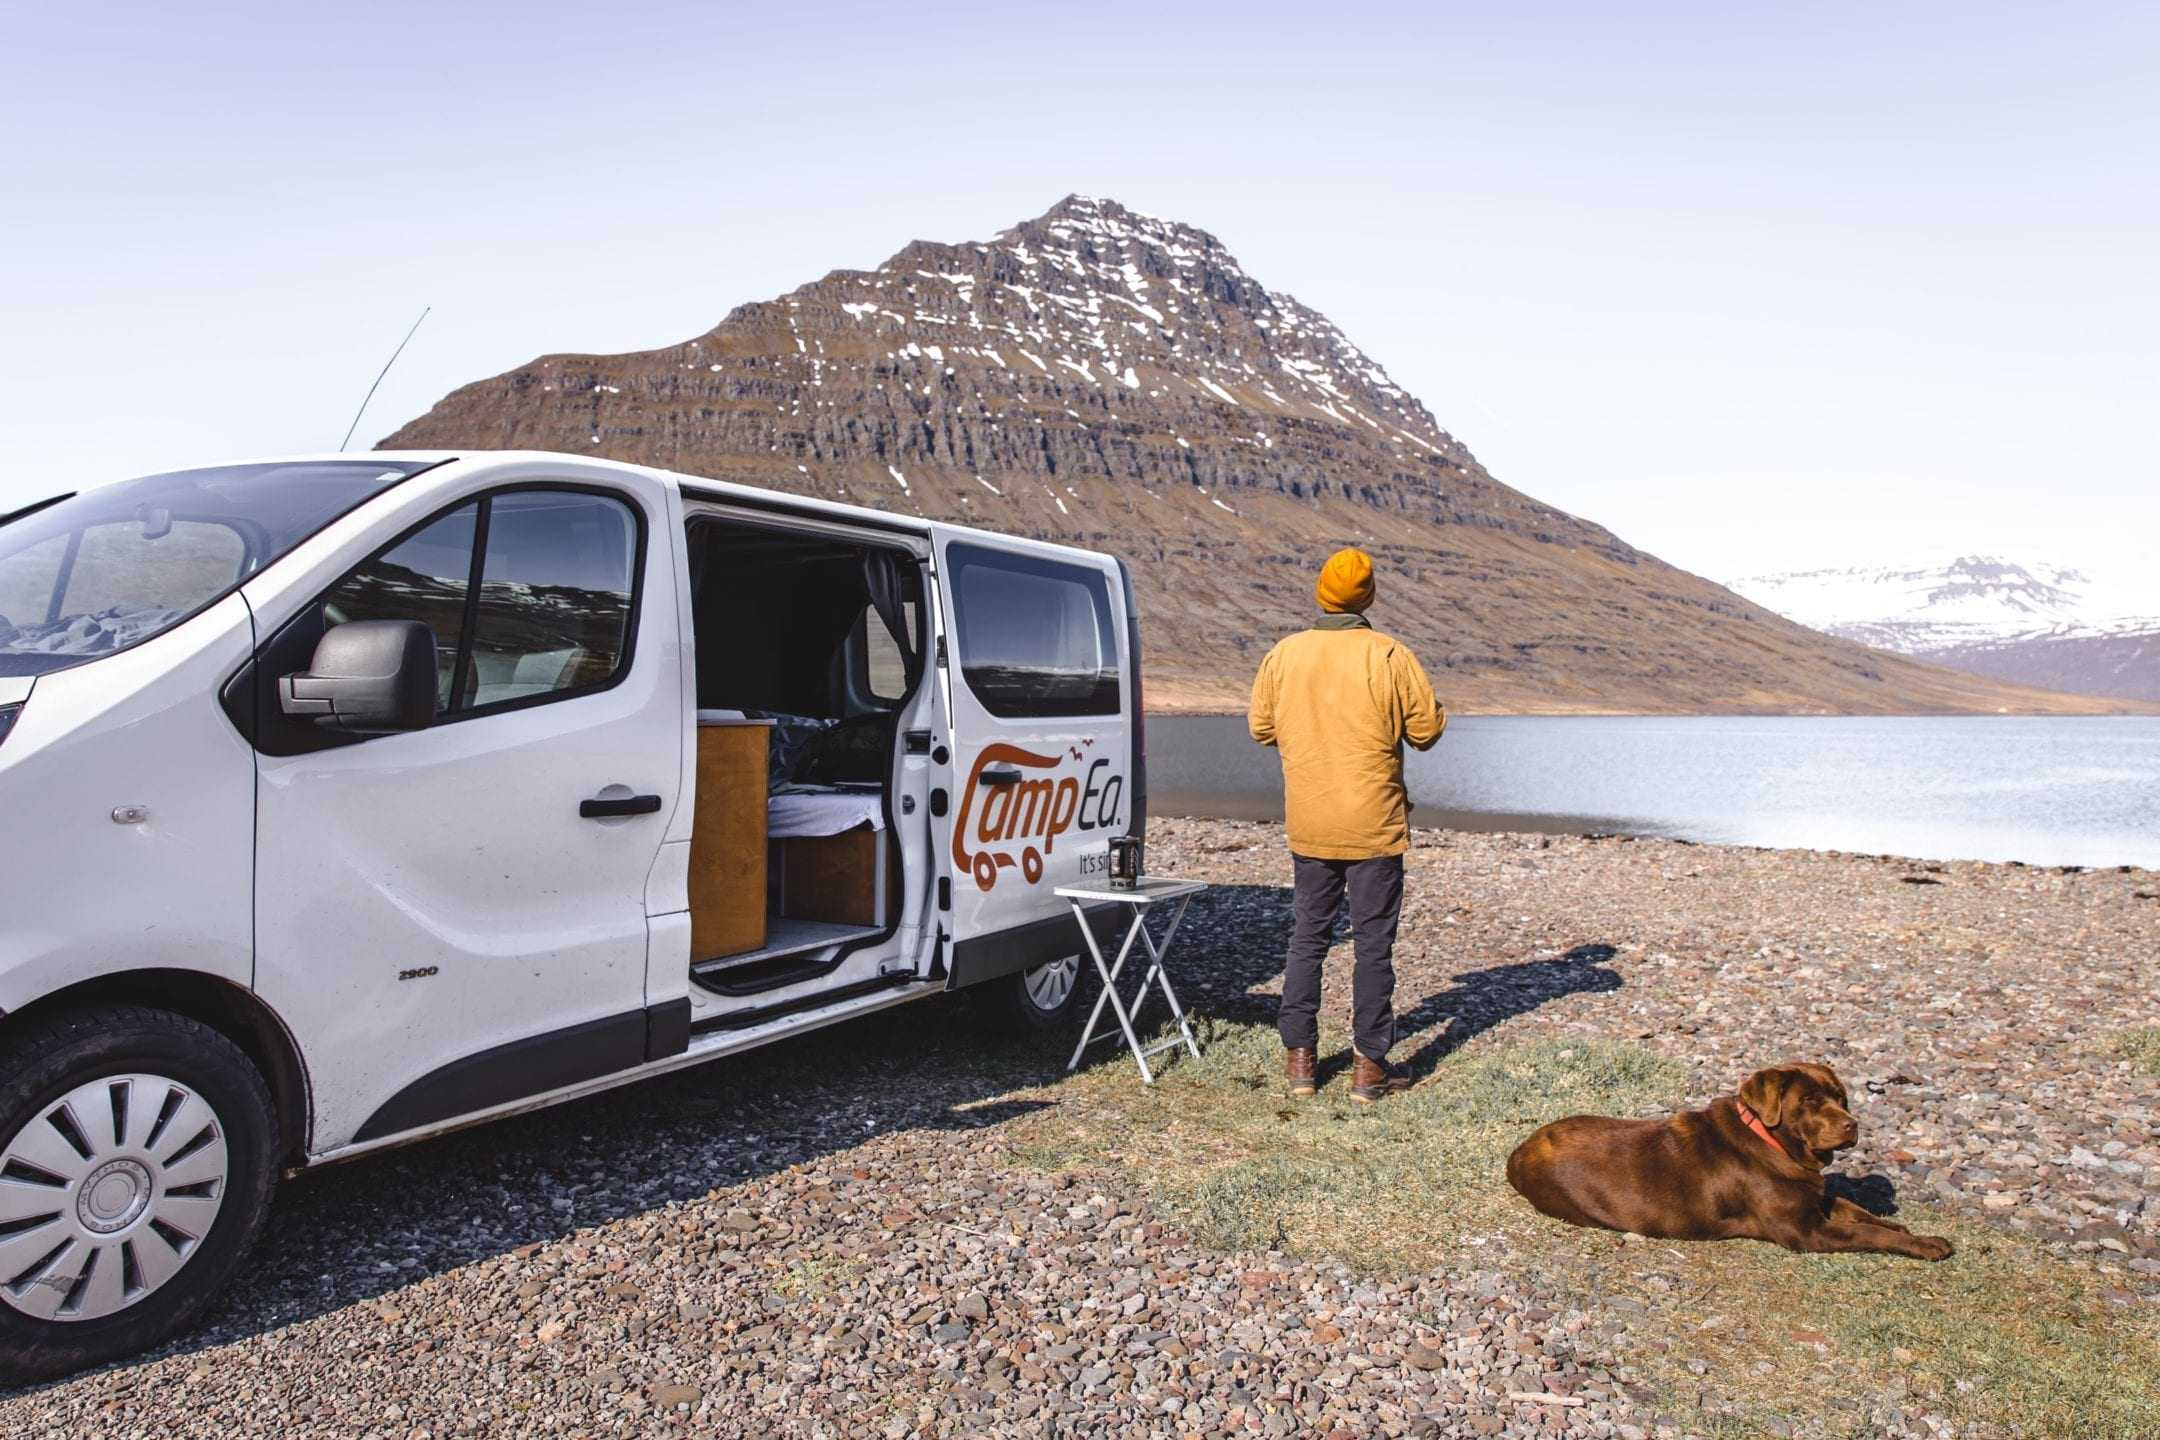 Man and a dog standing next to a camper